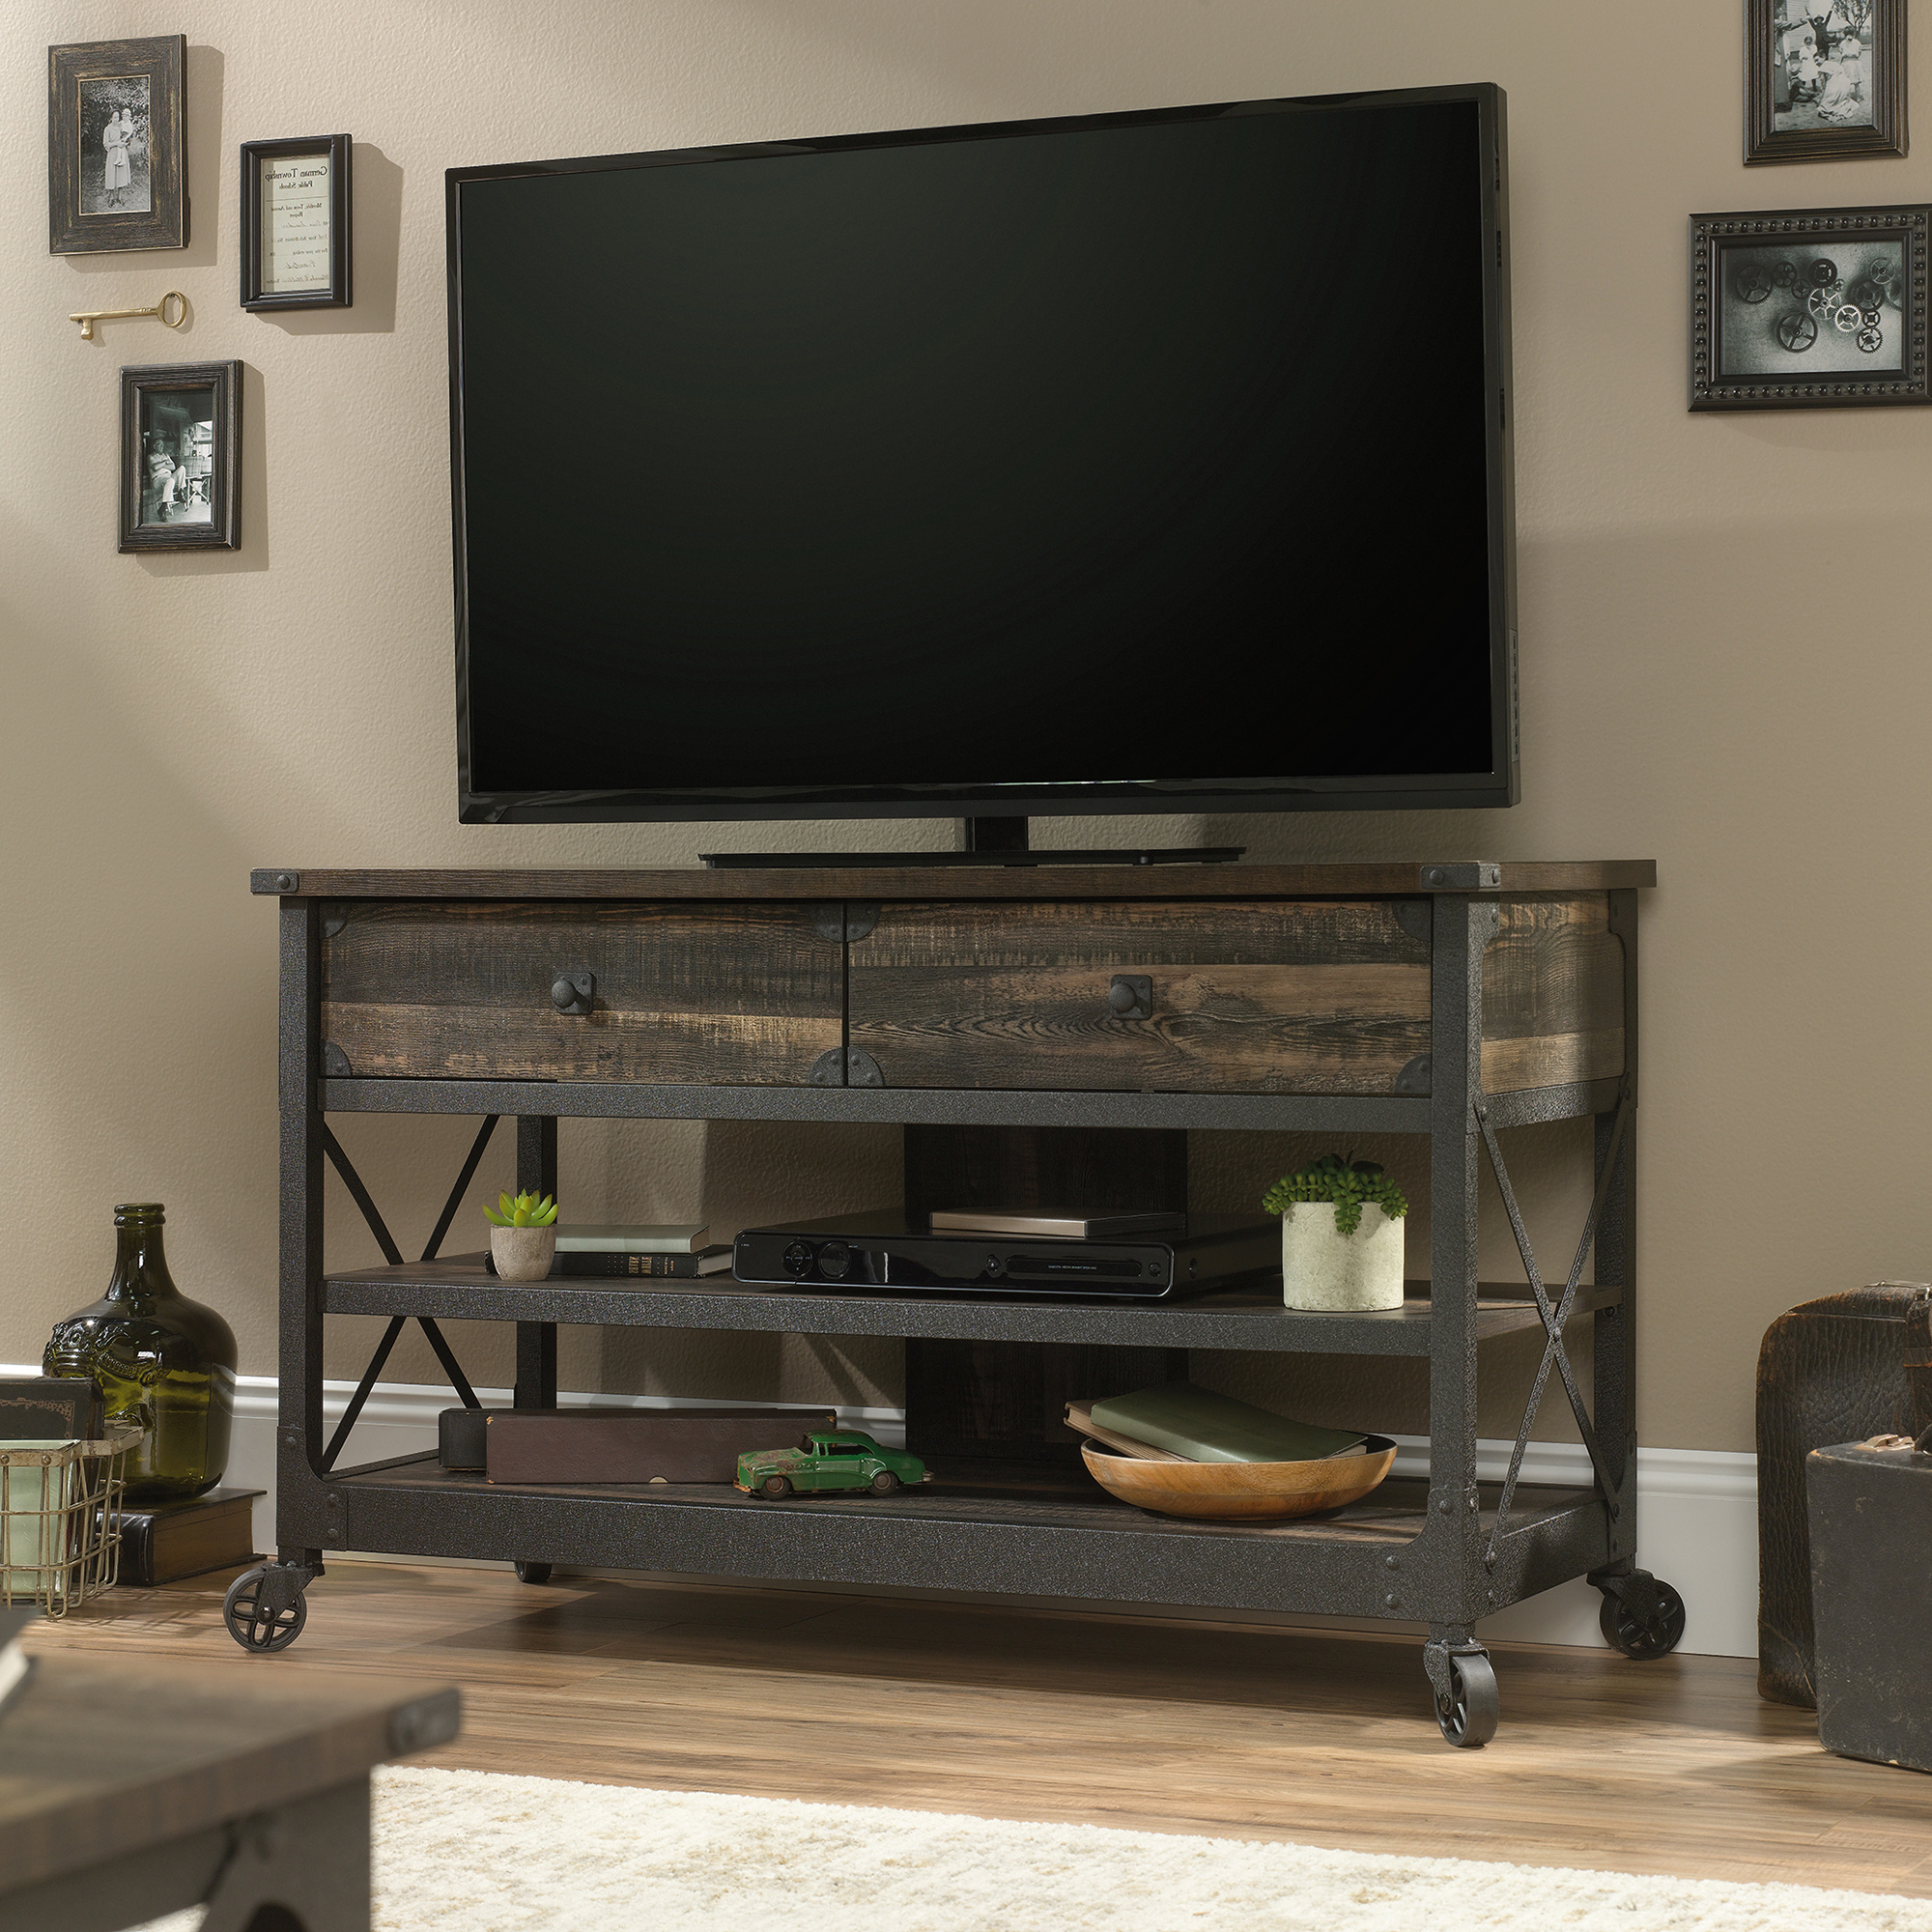 Industrial Tv Stands For Best And Newest Steel River Industrial Tv Stand Carbon Oak (423913) – Sauder (View 8 of 20)